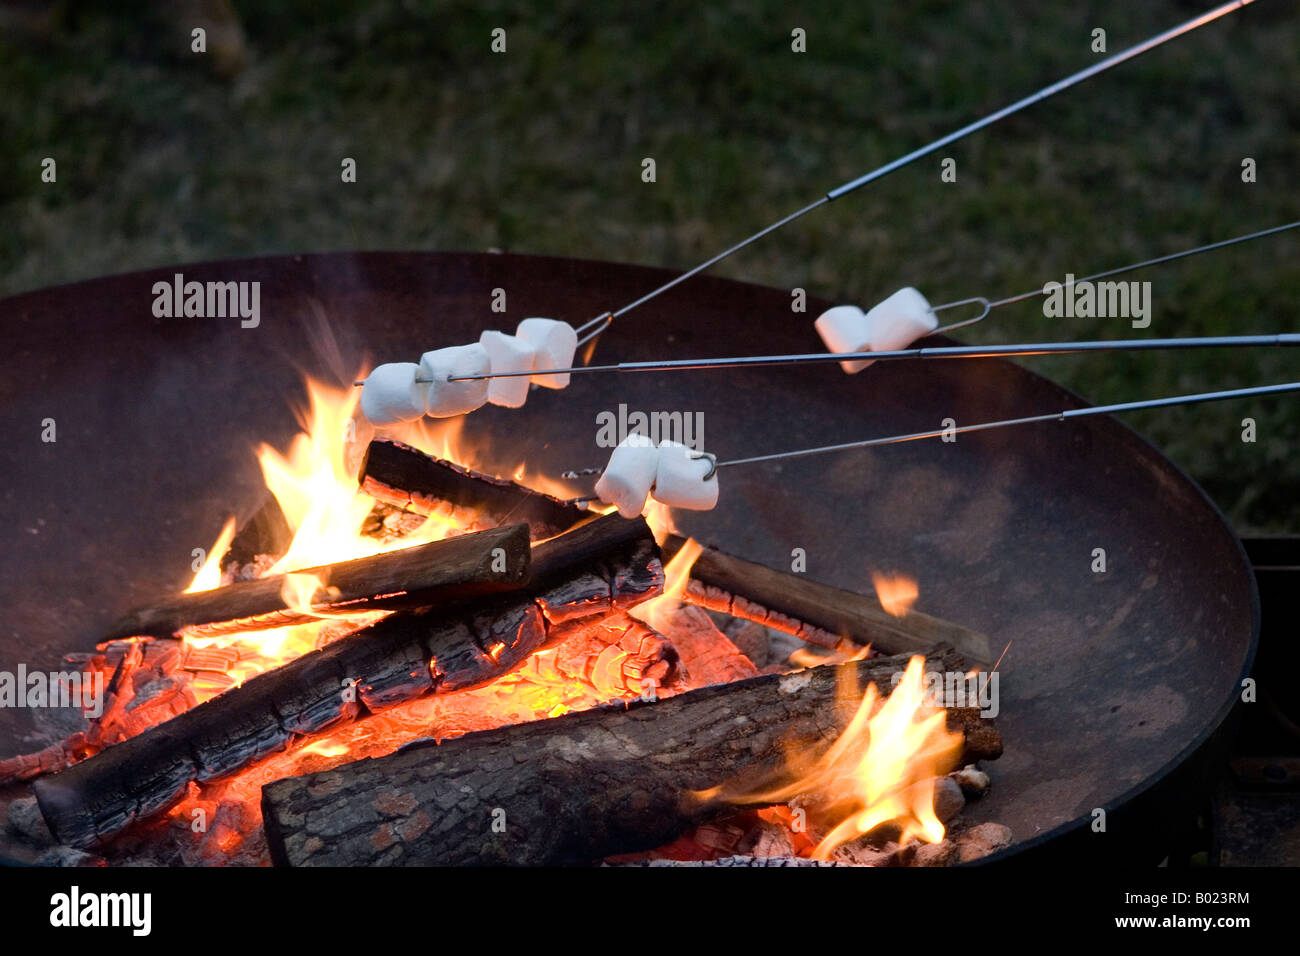 Roasting Marshmallows On Skewers Over The Flame Of A Wood Burning Campfire